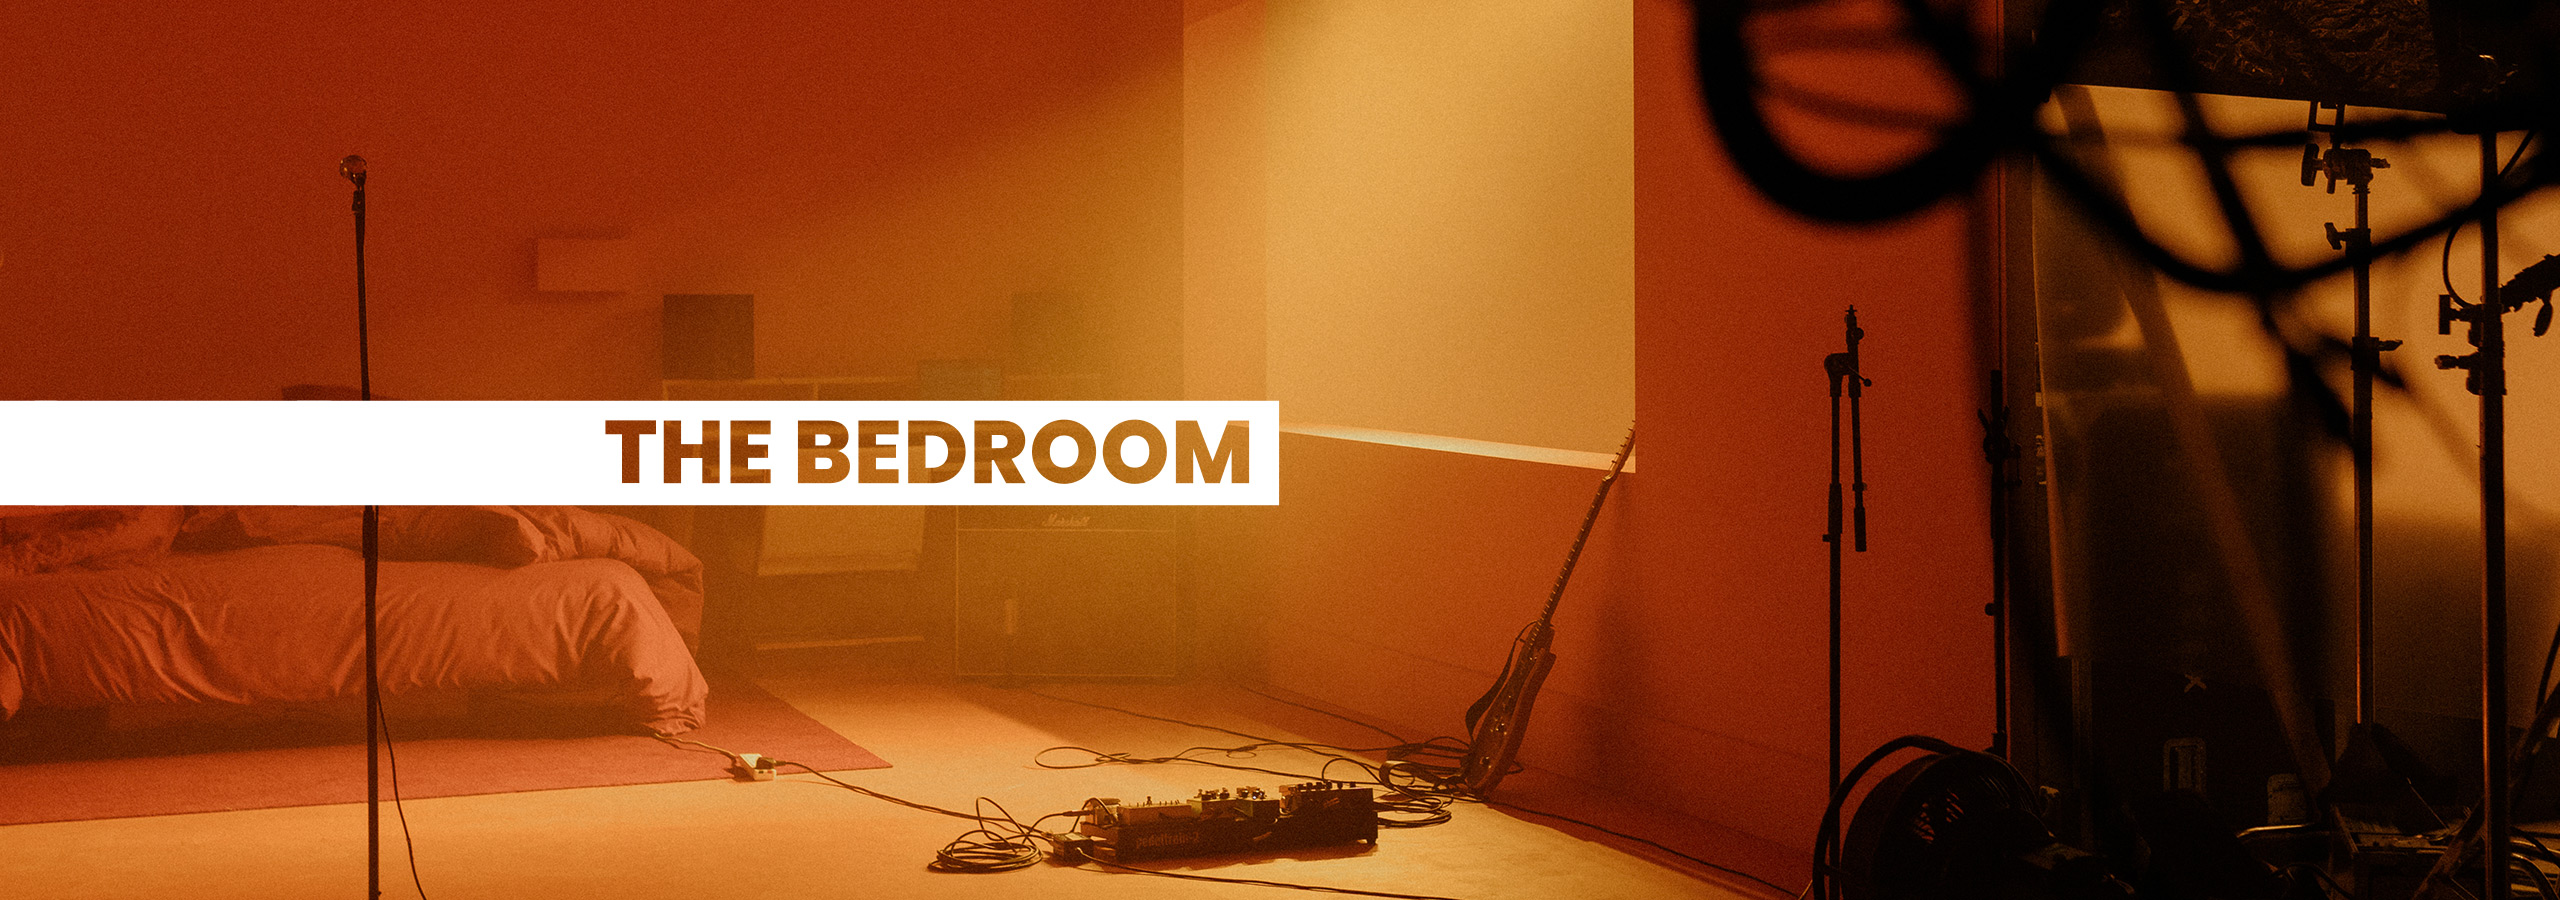 Image of a bedroom with music production gear in the corner